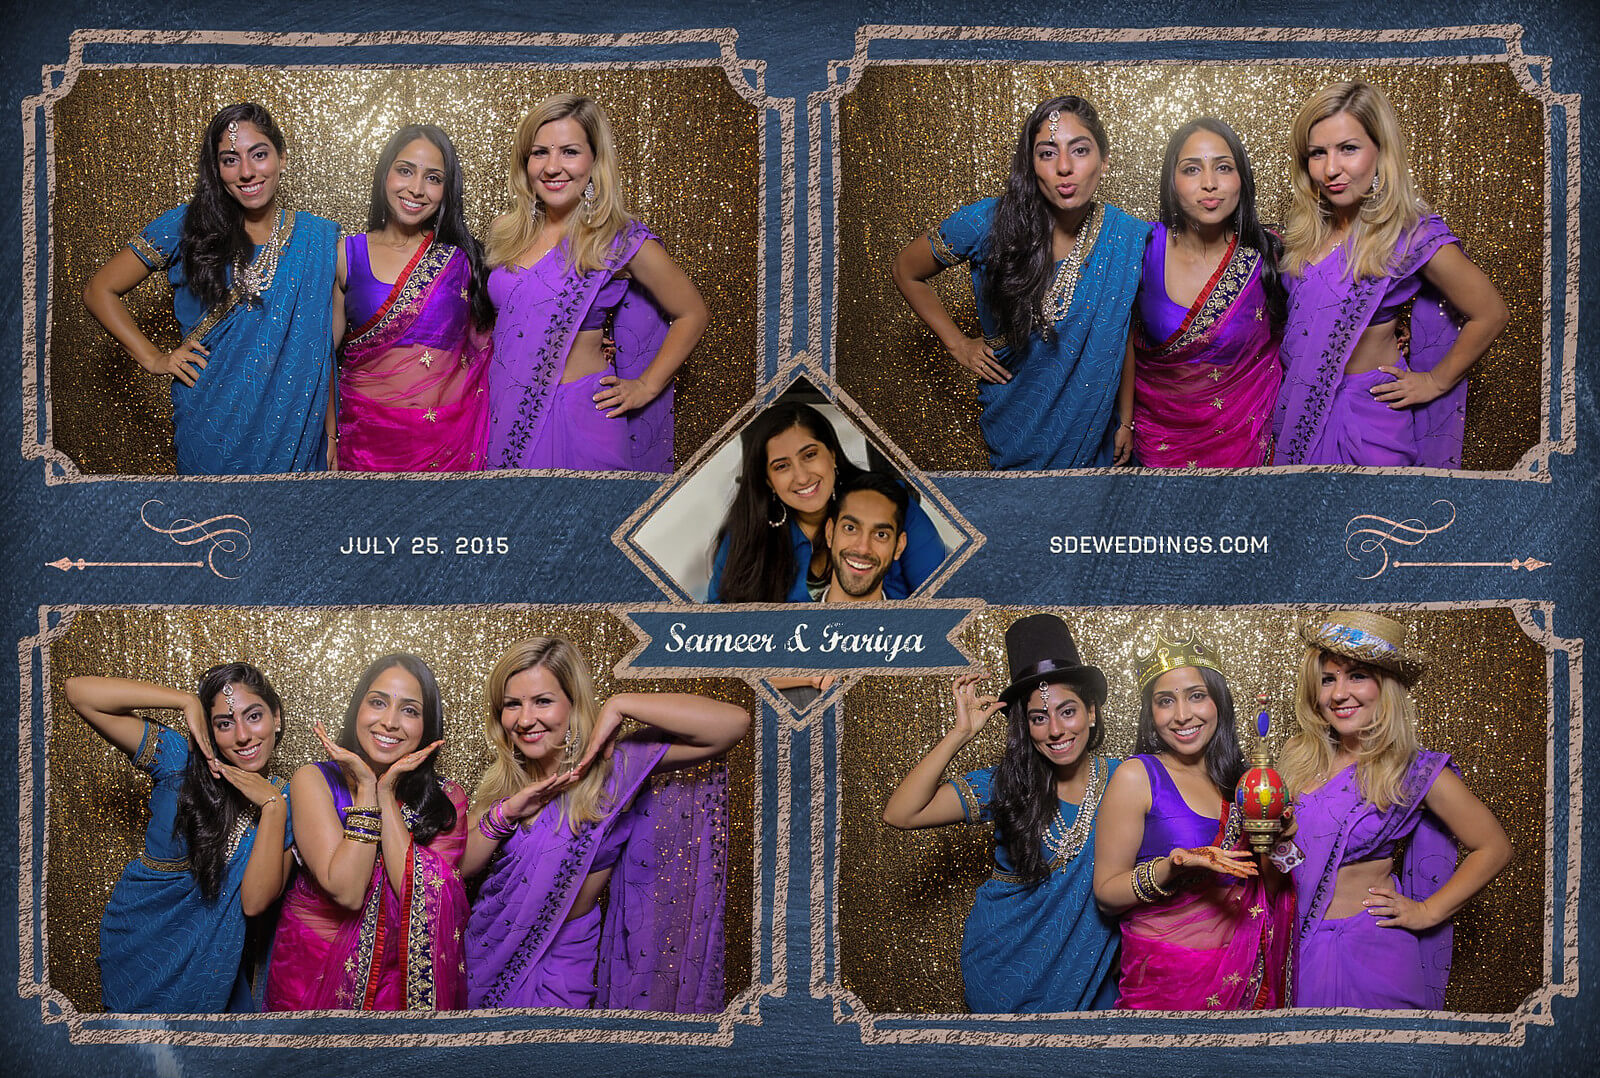 Toronto Hilton Downtown Wedding Photobooth Rental 1